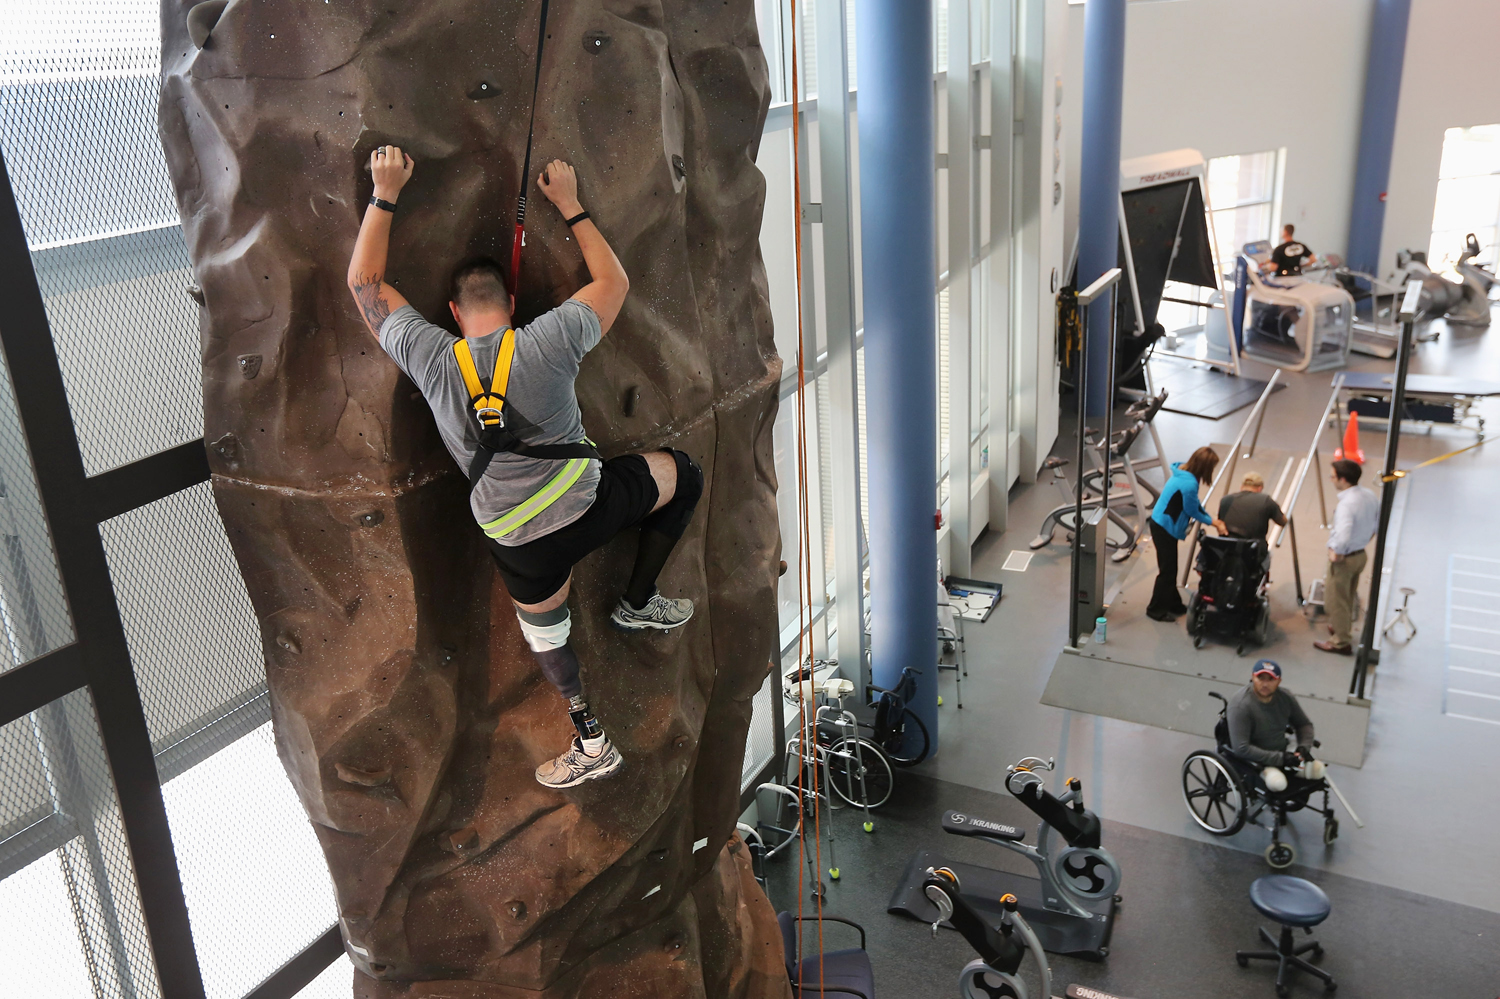 CFI rock wall